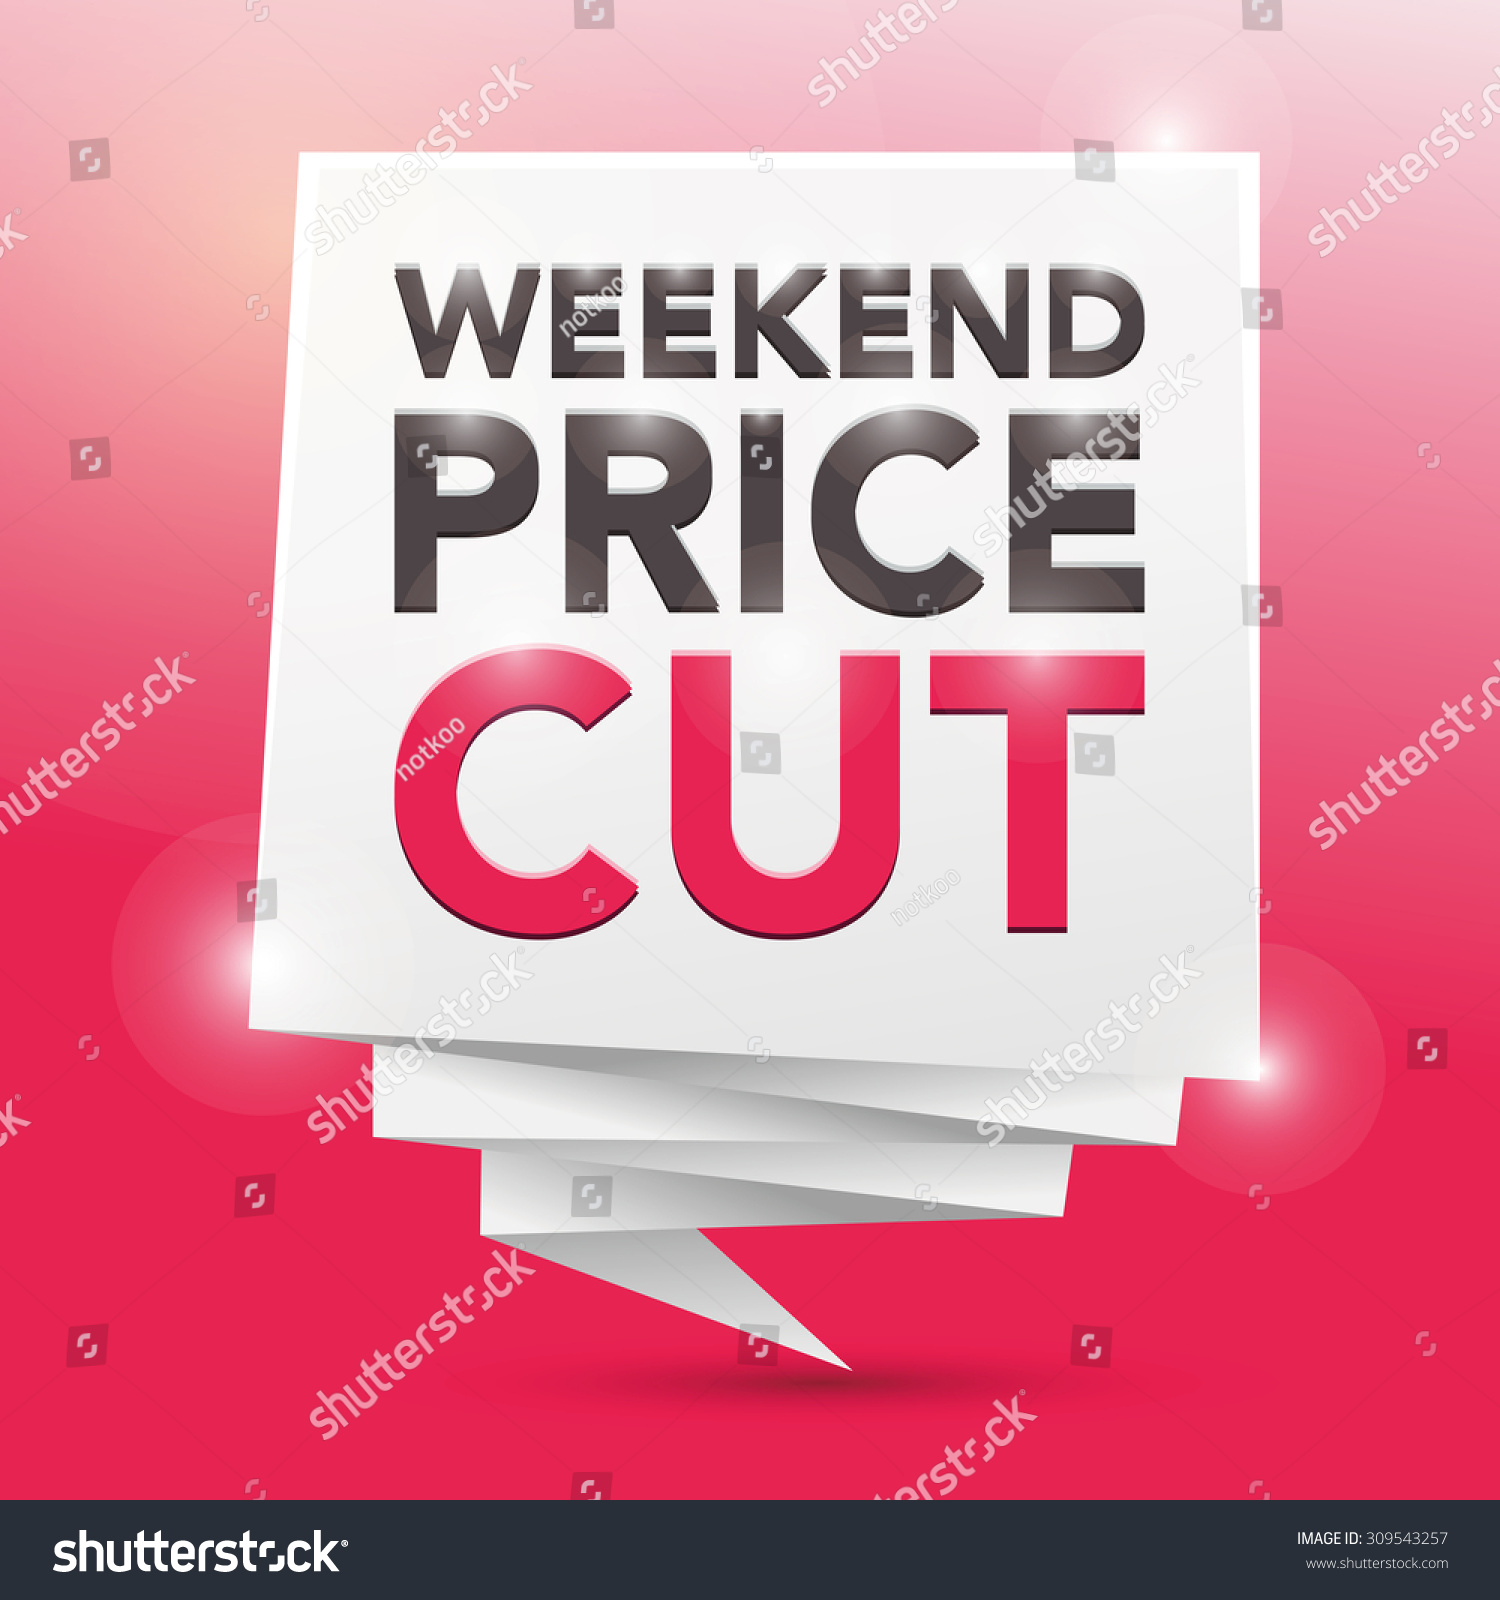 Price for a poster design - Weekend Price Cut Poster Design Element Preview Save To A Lightbox